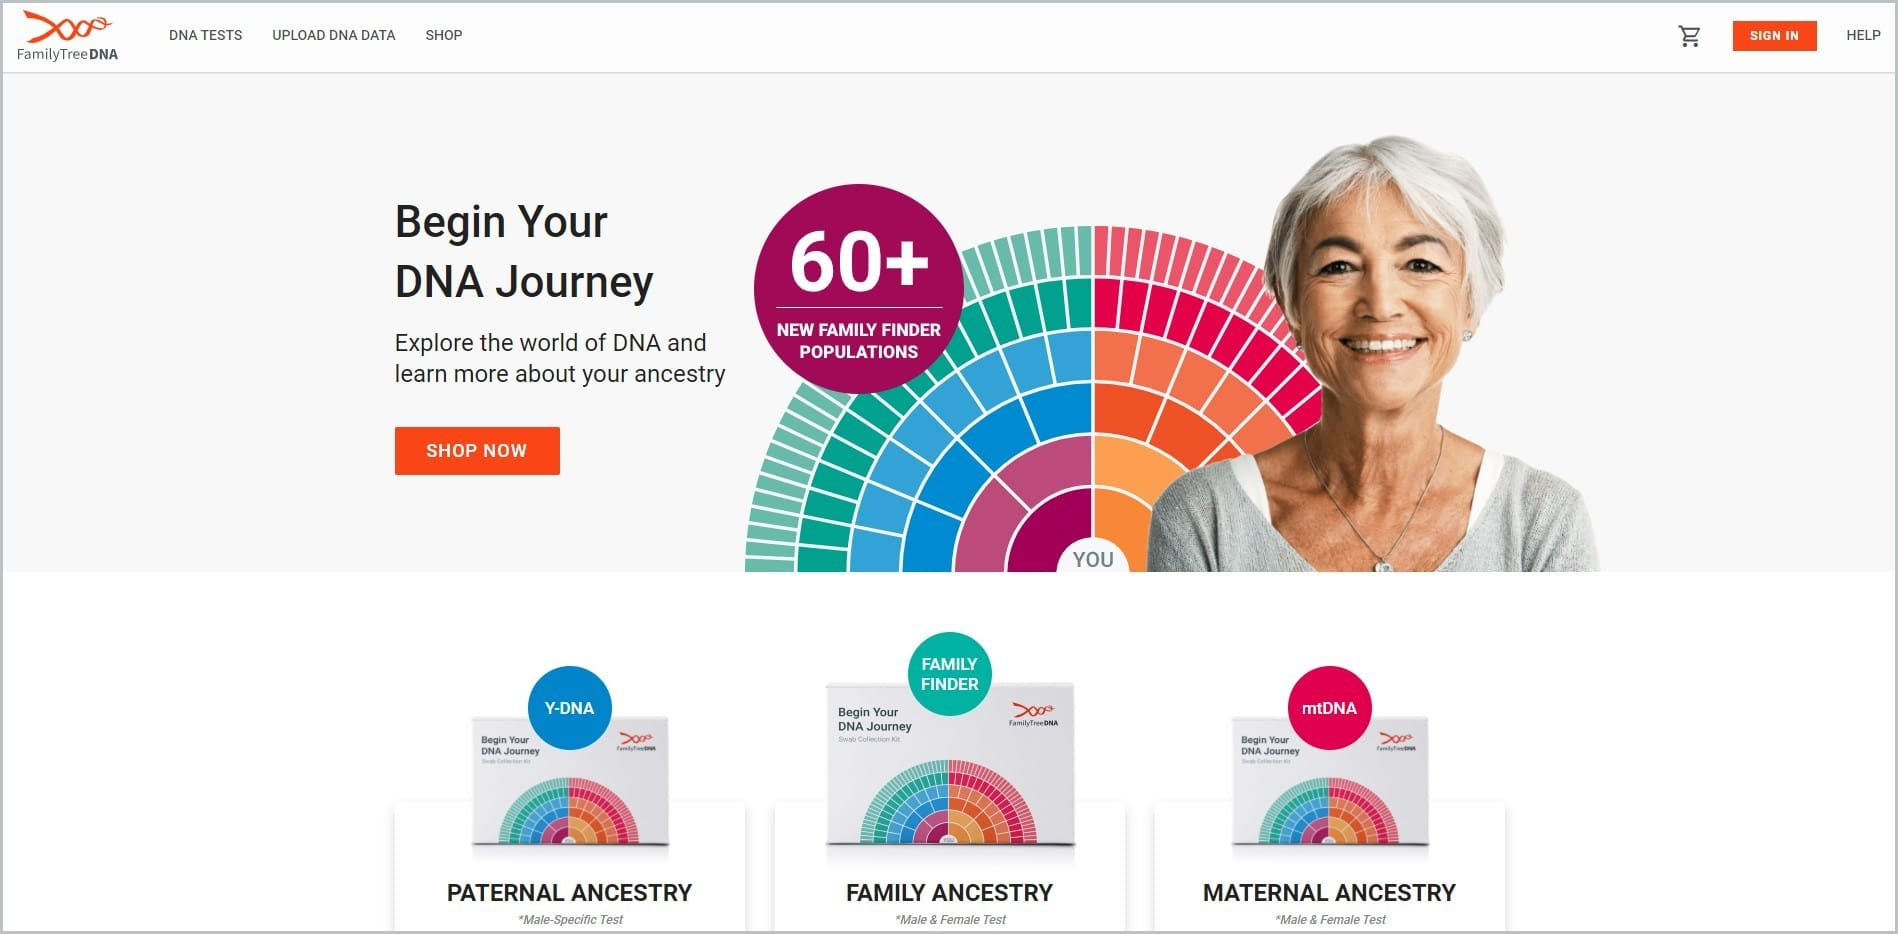 screenshot of FamilyTreeDNA homepage, with white header bearing the website's name and main navigation menu, showcasing an elderly smiling woman in white top with a colorful palate behind her